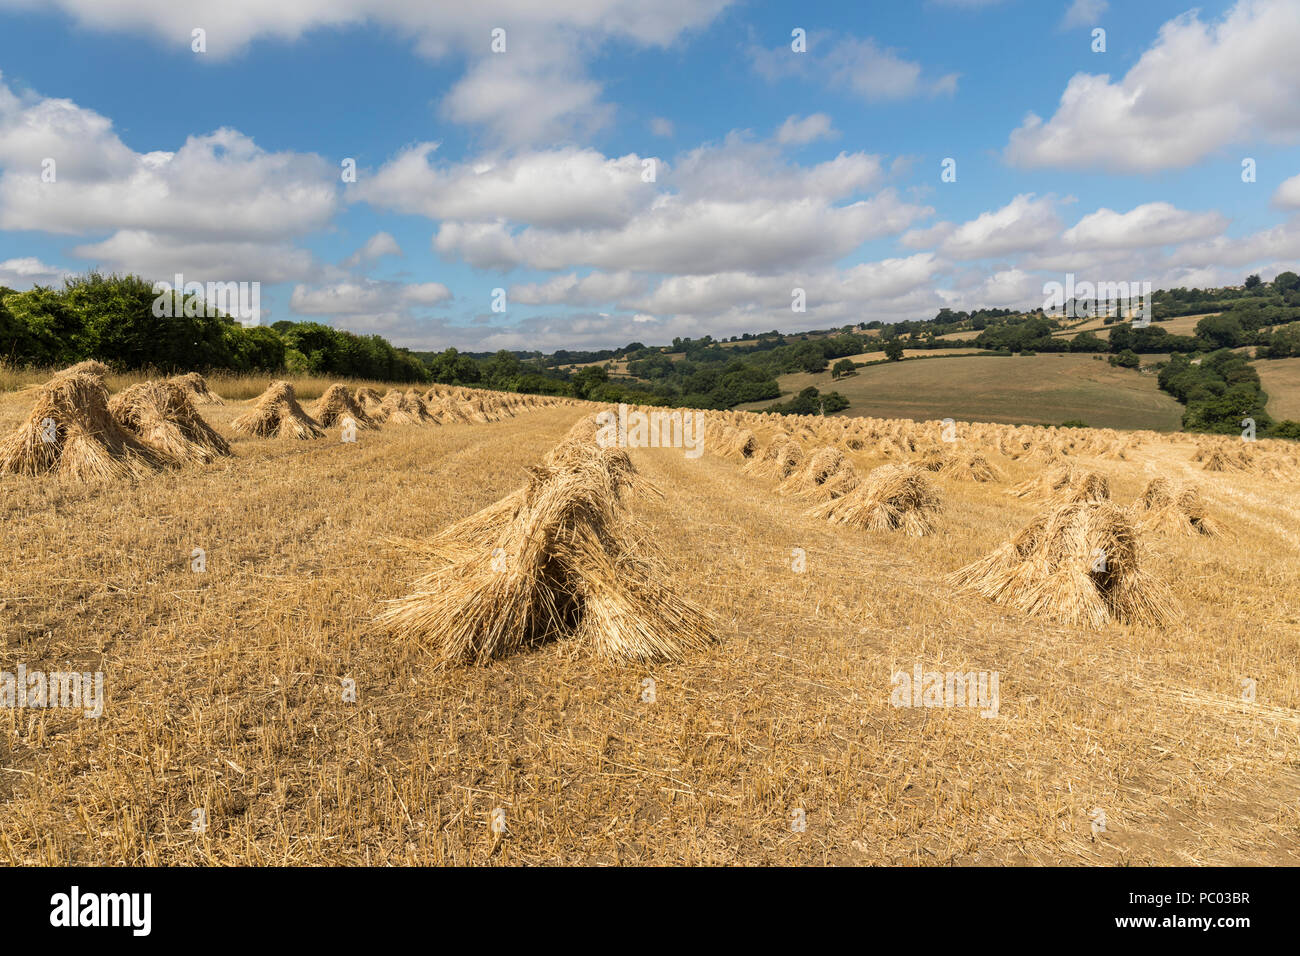 A field of stooks nr Colerne, Wiltshire, England Stock Photo